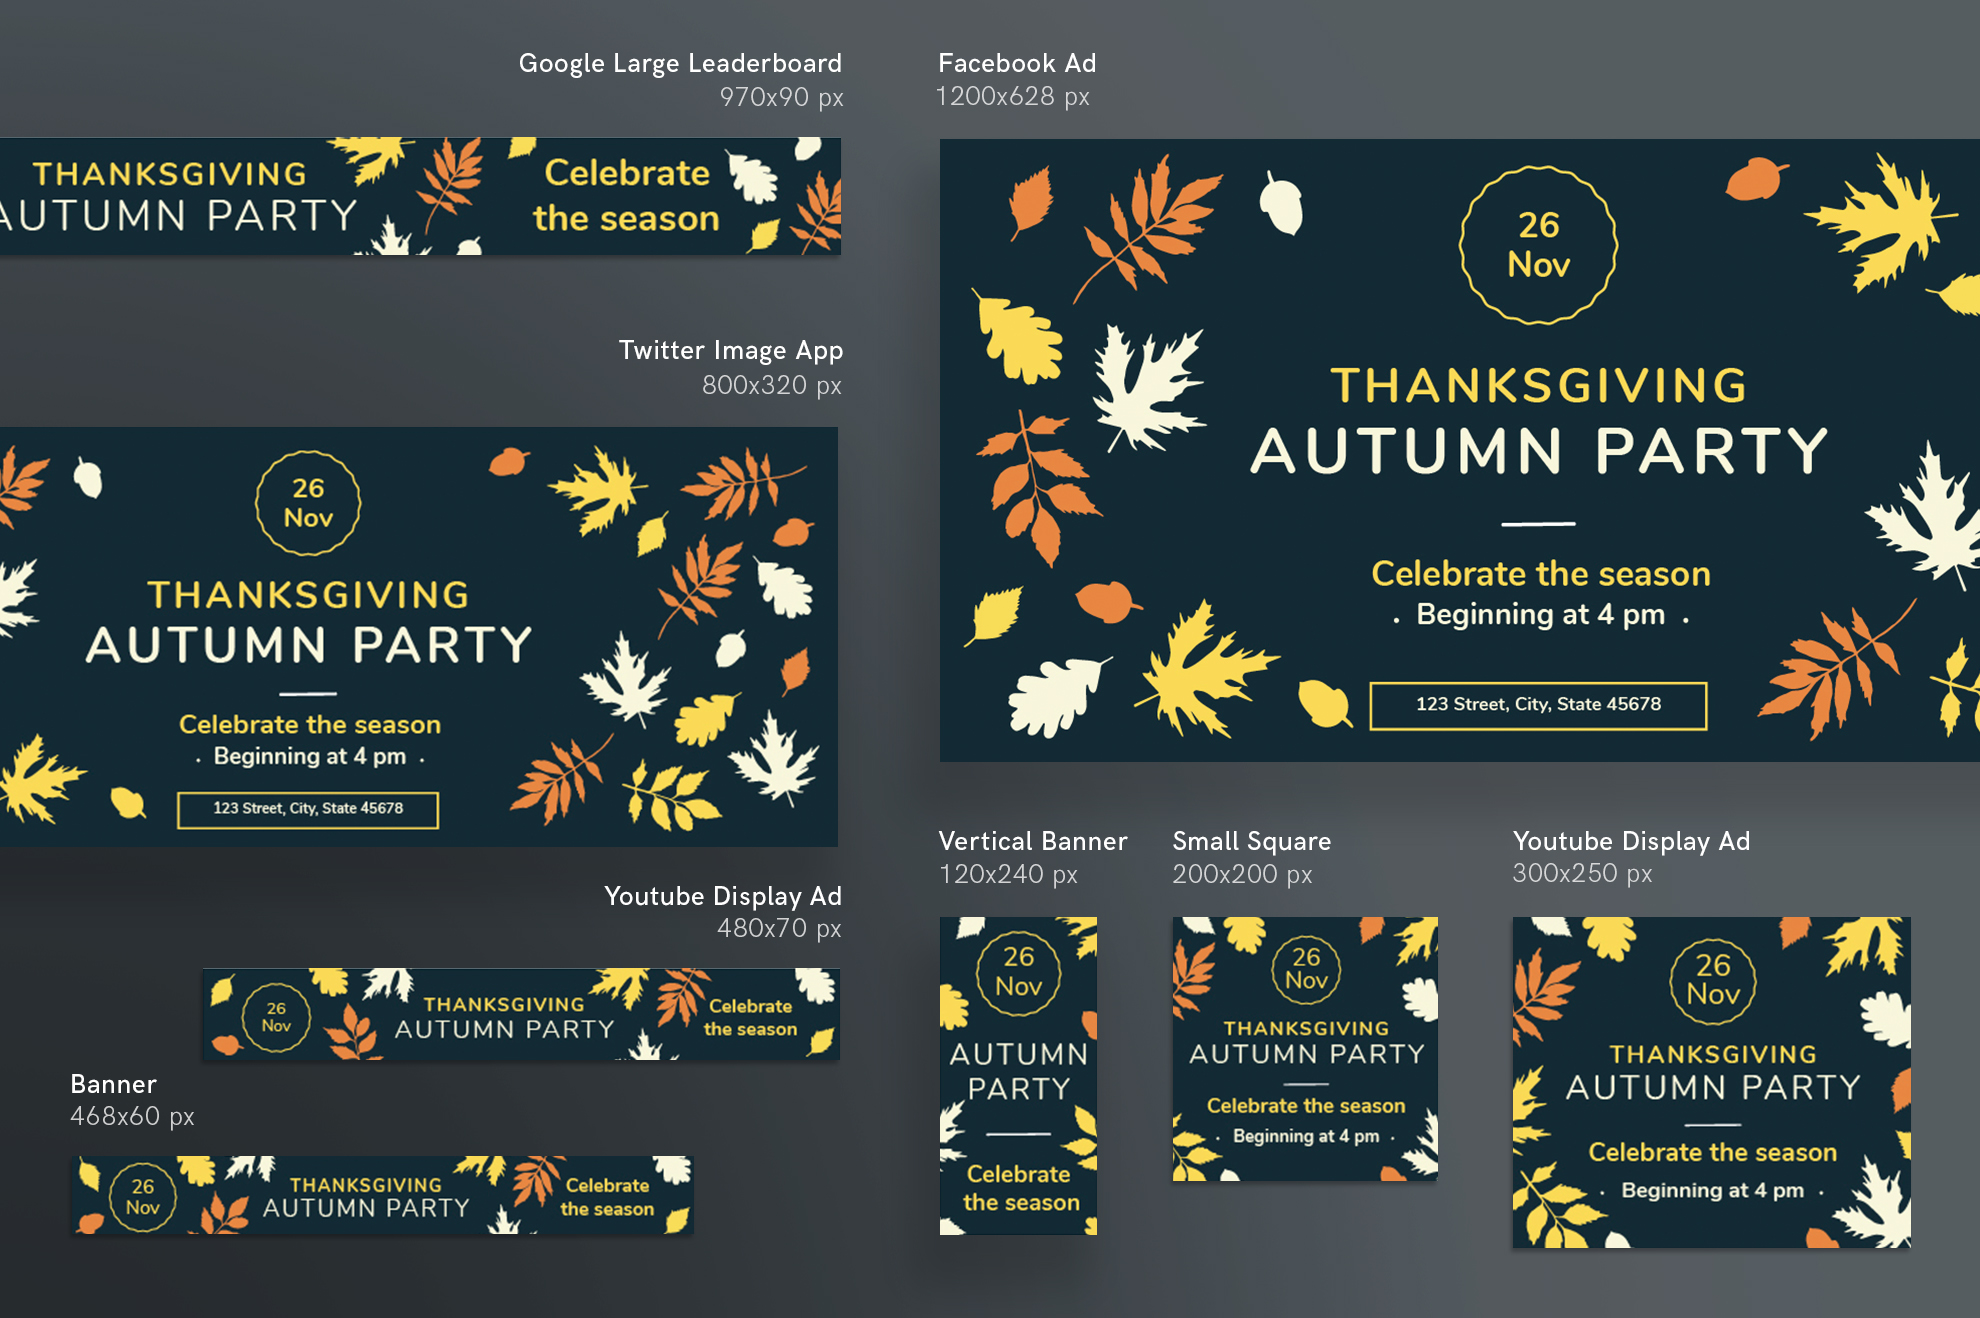 Thanksgiving Autumn Party Design Templates Bundle example image 6